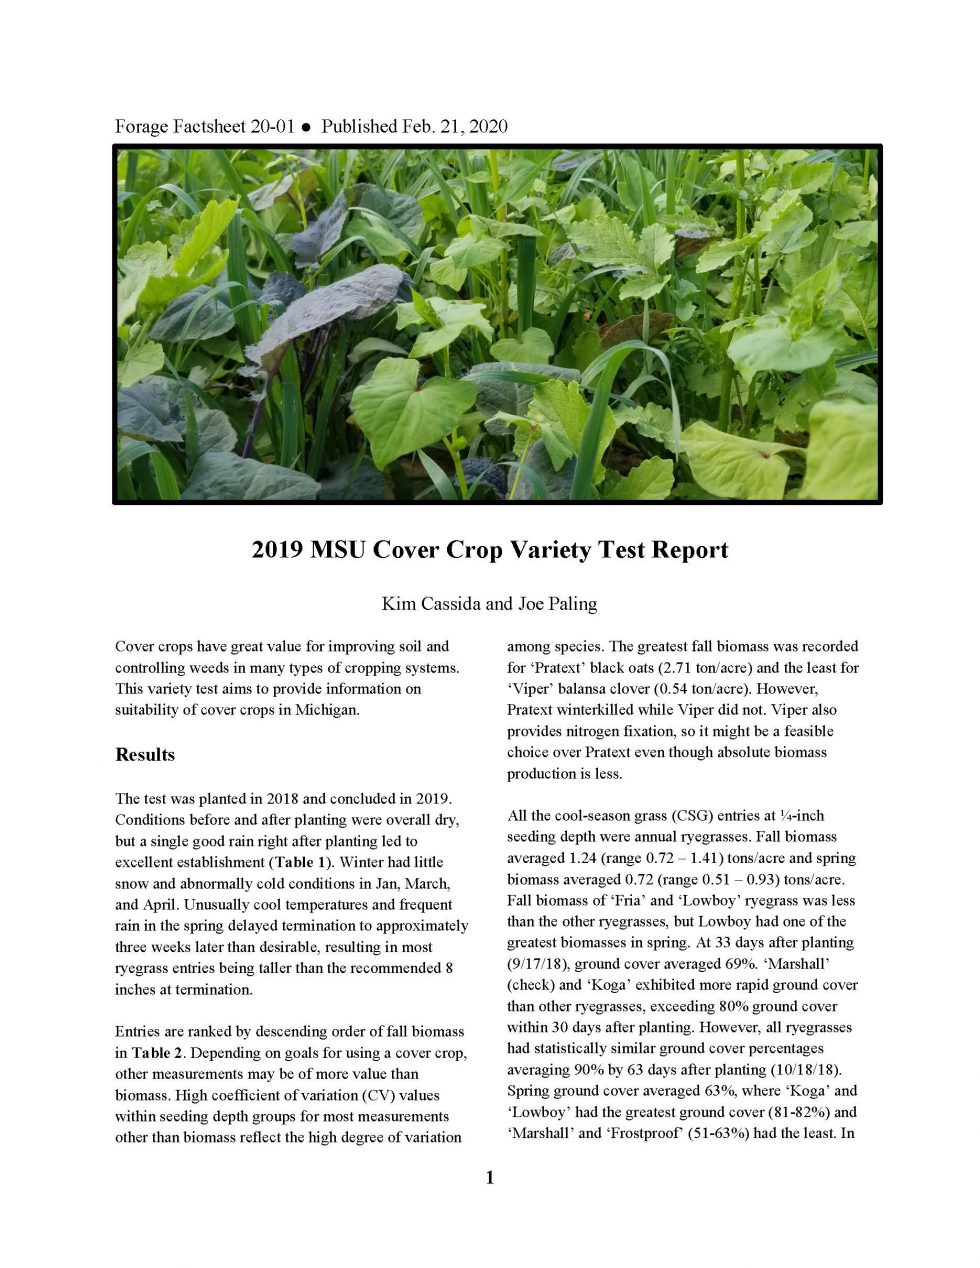 2019 MSU Cover Crop Variety Test